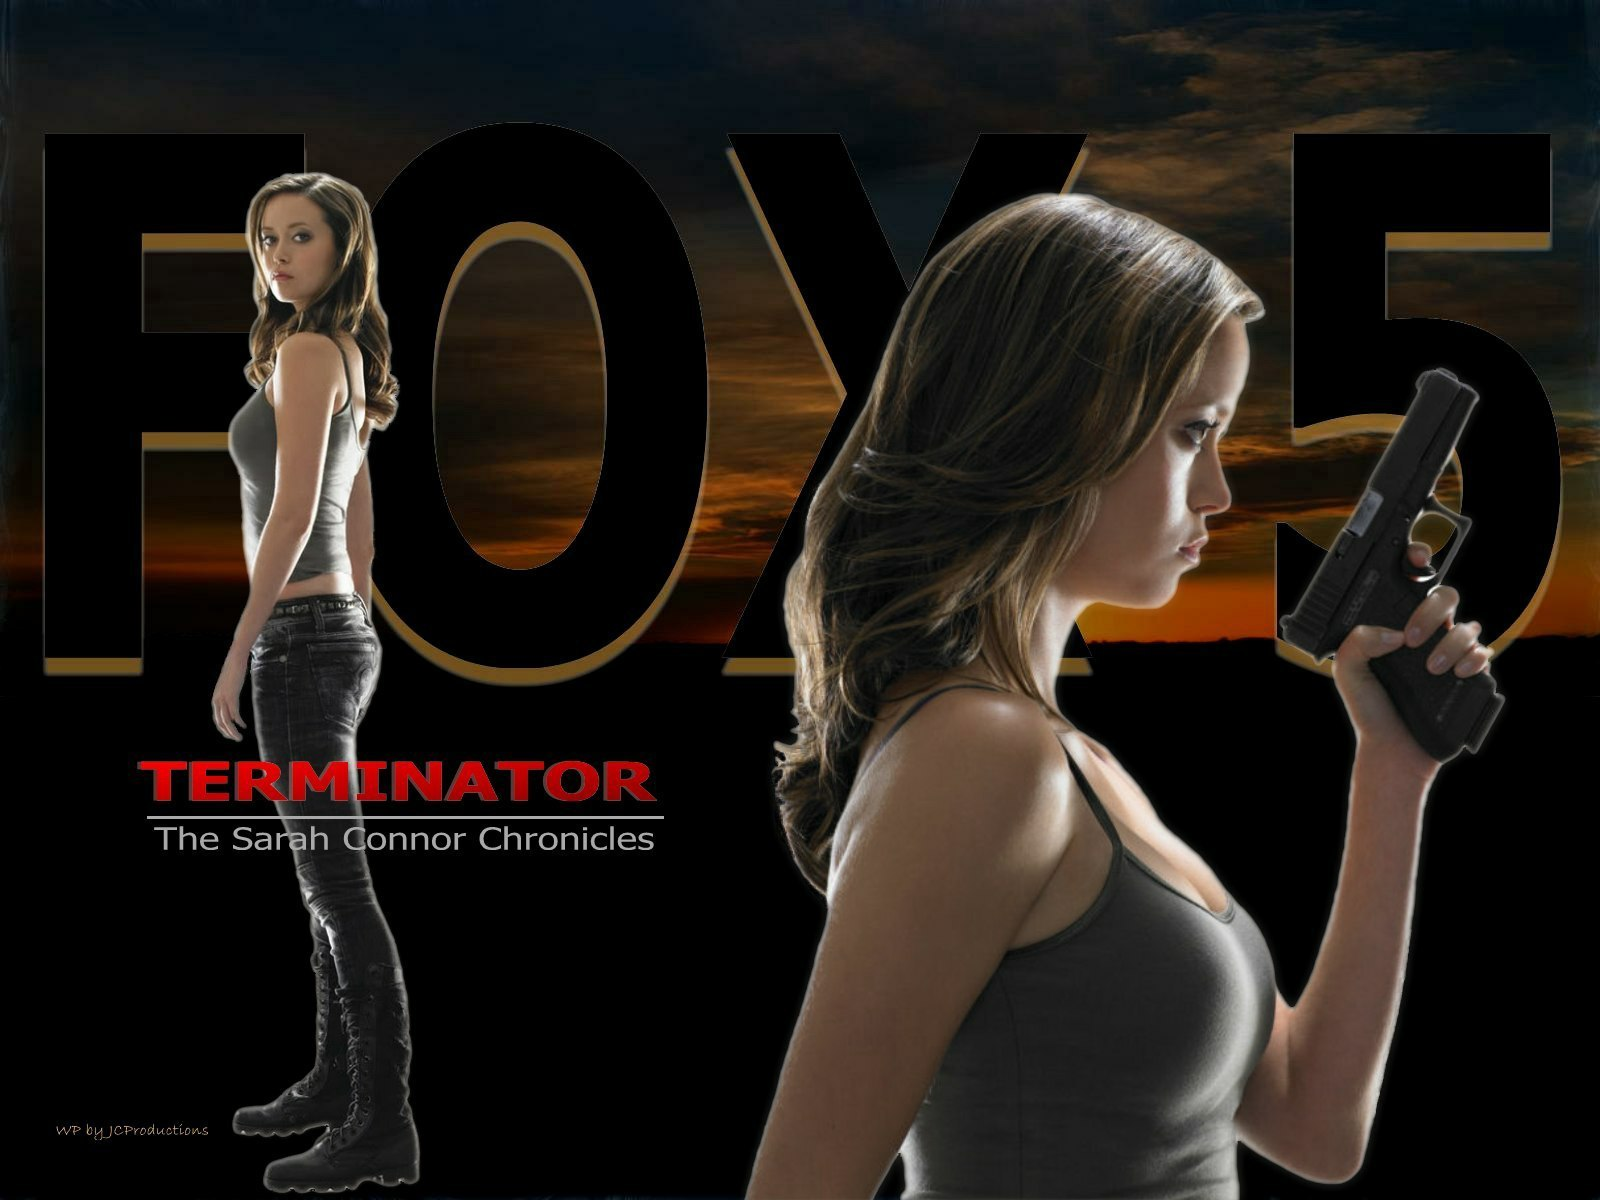 Terminator  The Sarah Connor Chronicles on Fox 5 summer glau 15905305 1600 1200 ... and read short stories to 150 or 200 people, with those in attendance ...